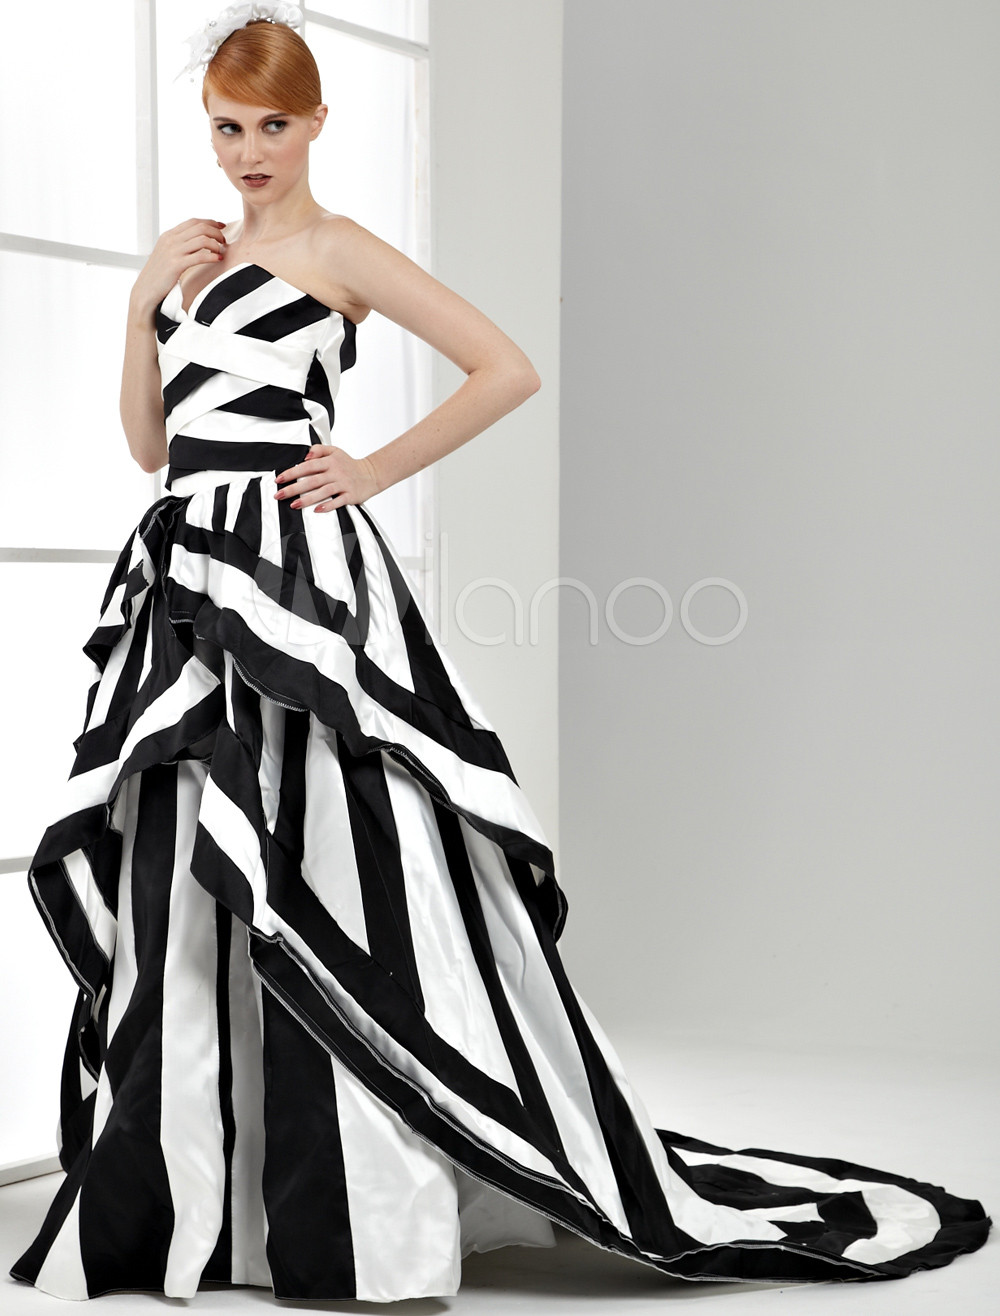 Black and White Ball Gowns | Dress images